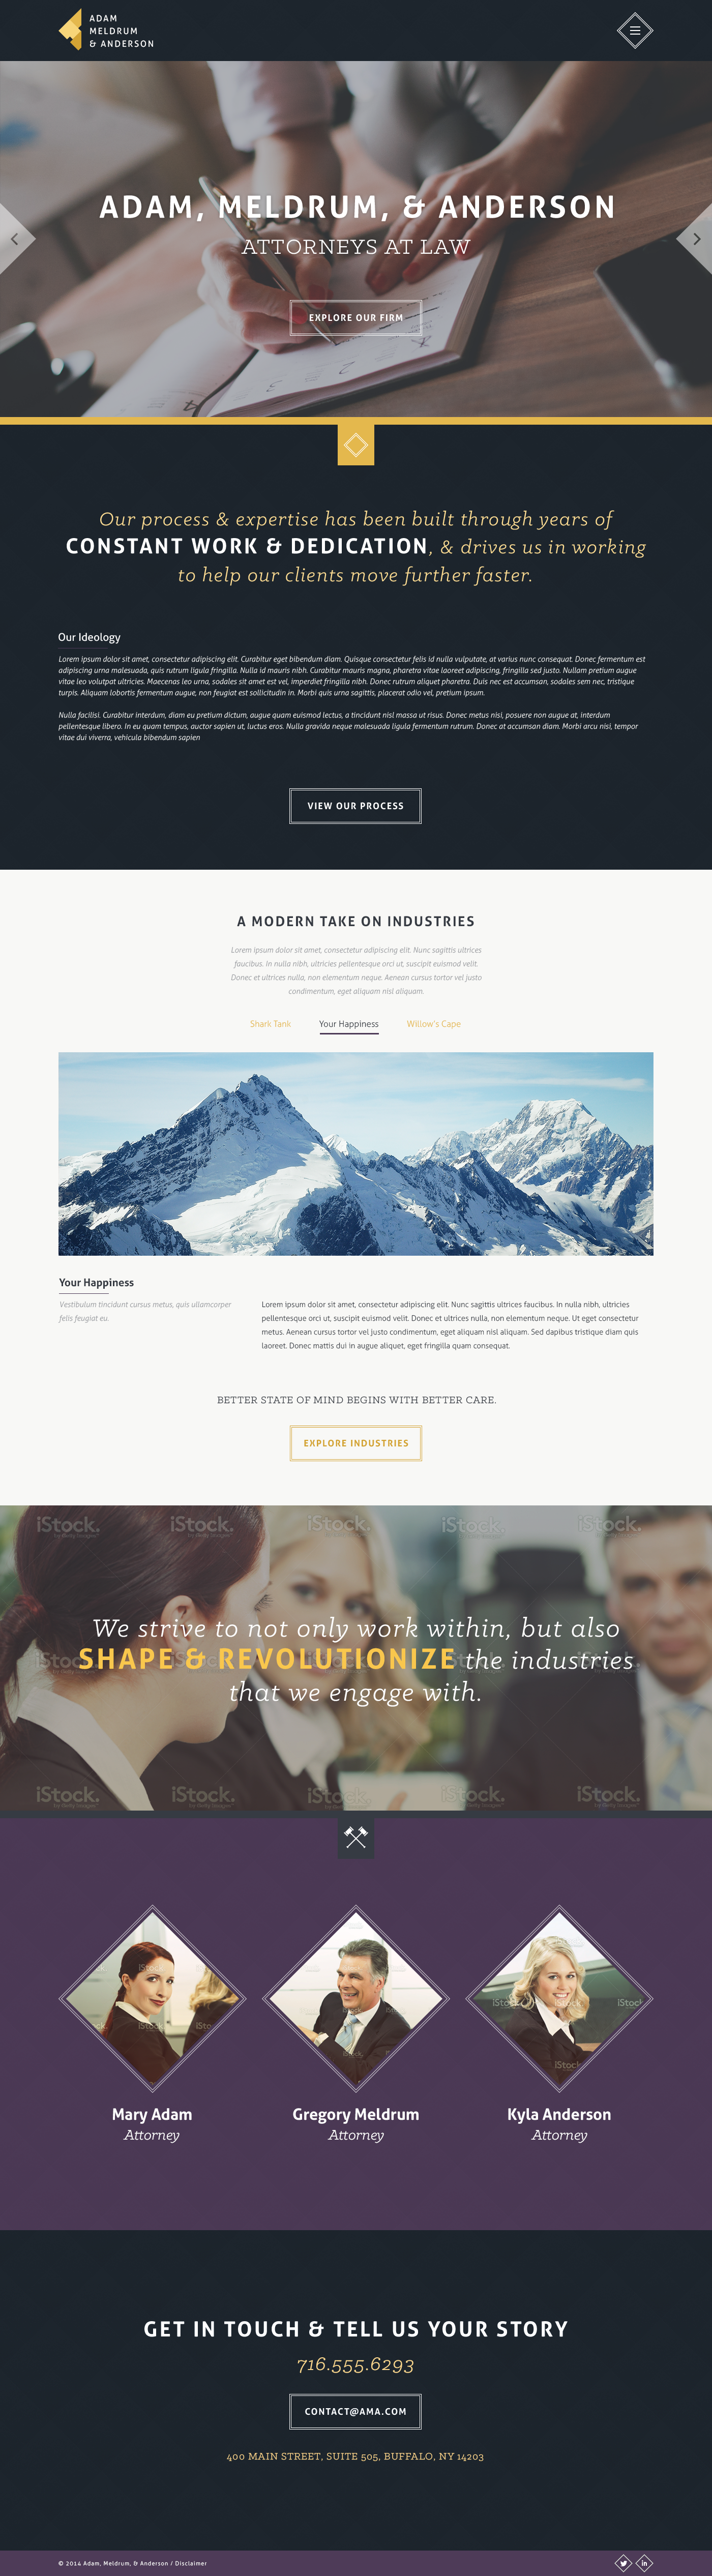 25 Classy Law Firm Website Designs